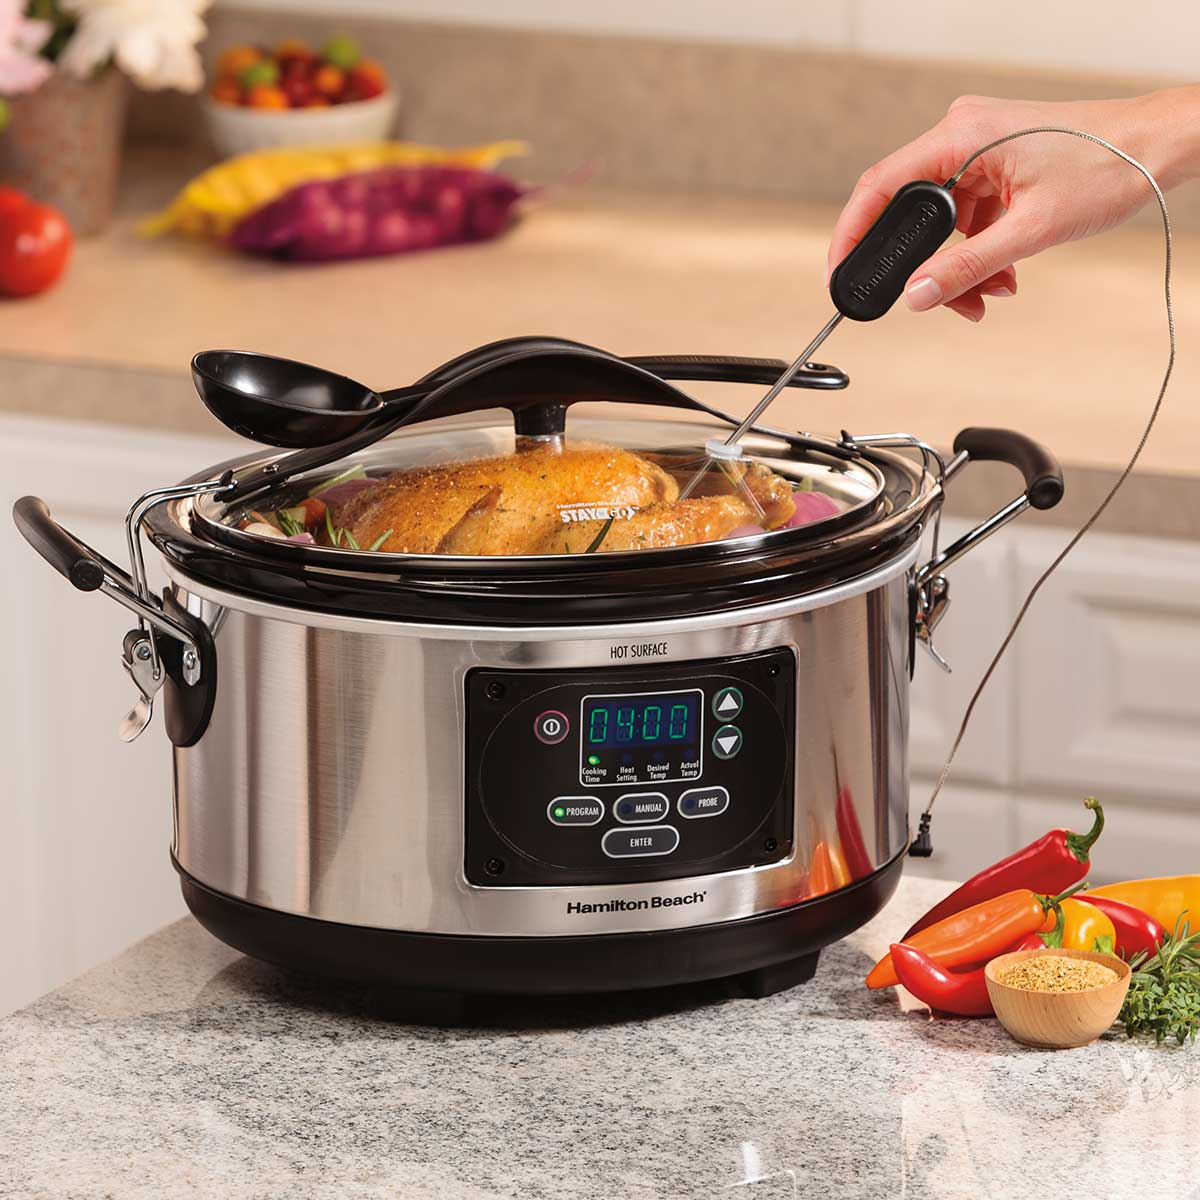 Set & Forget® 6 Qt. Programmable Slow Cooker With Spoon/Lid (33967)